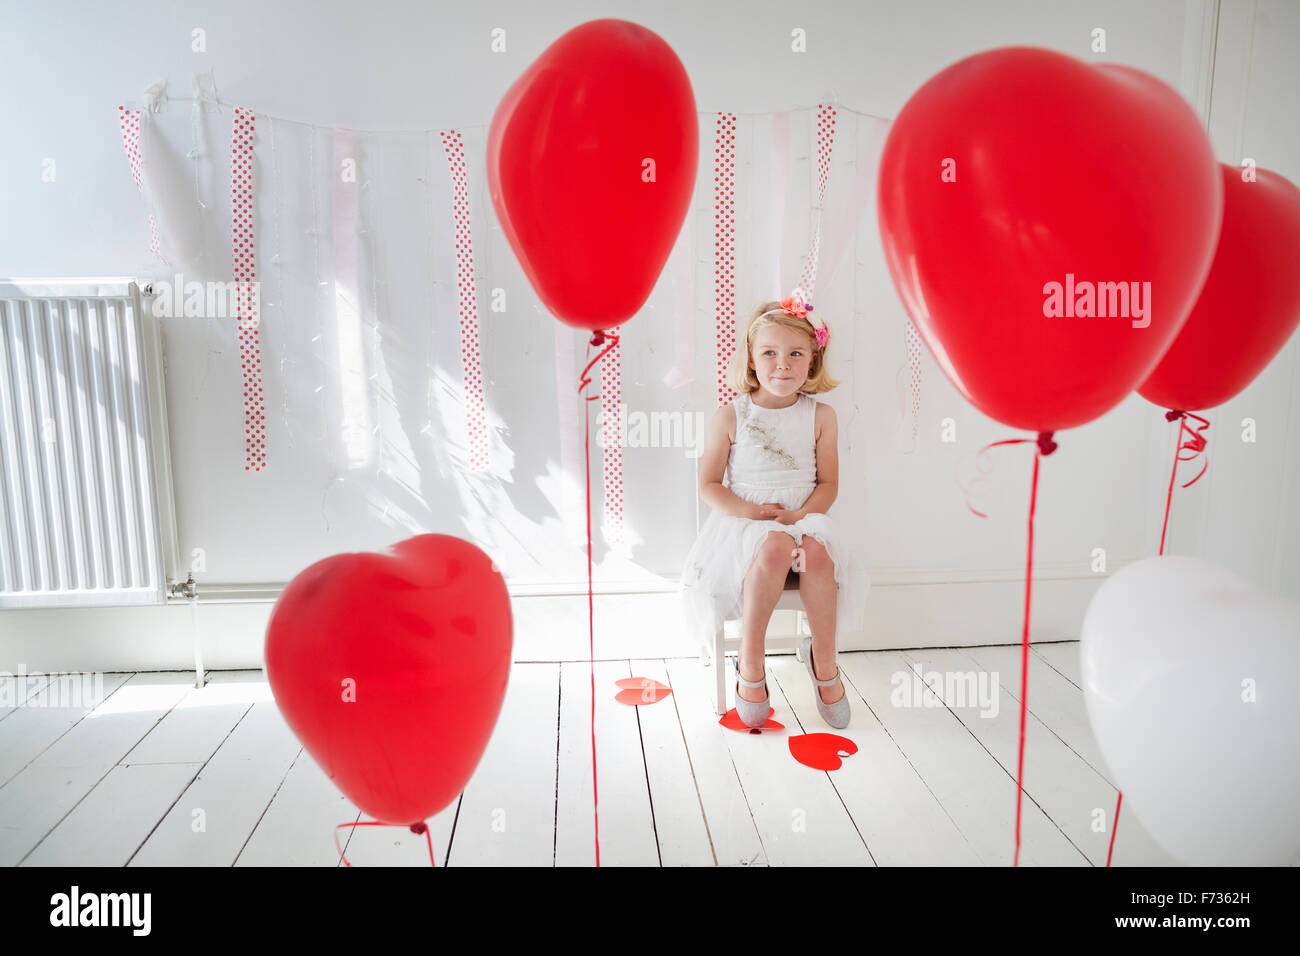 Young girl posing for a picture in a photographers studio, surrounded by red balloons. - Stock Image